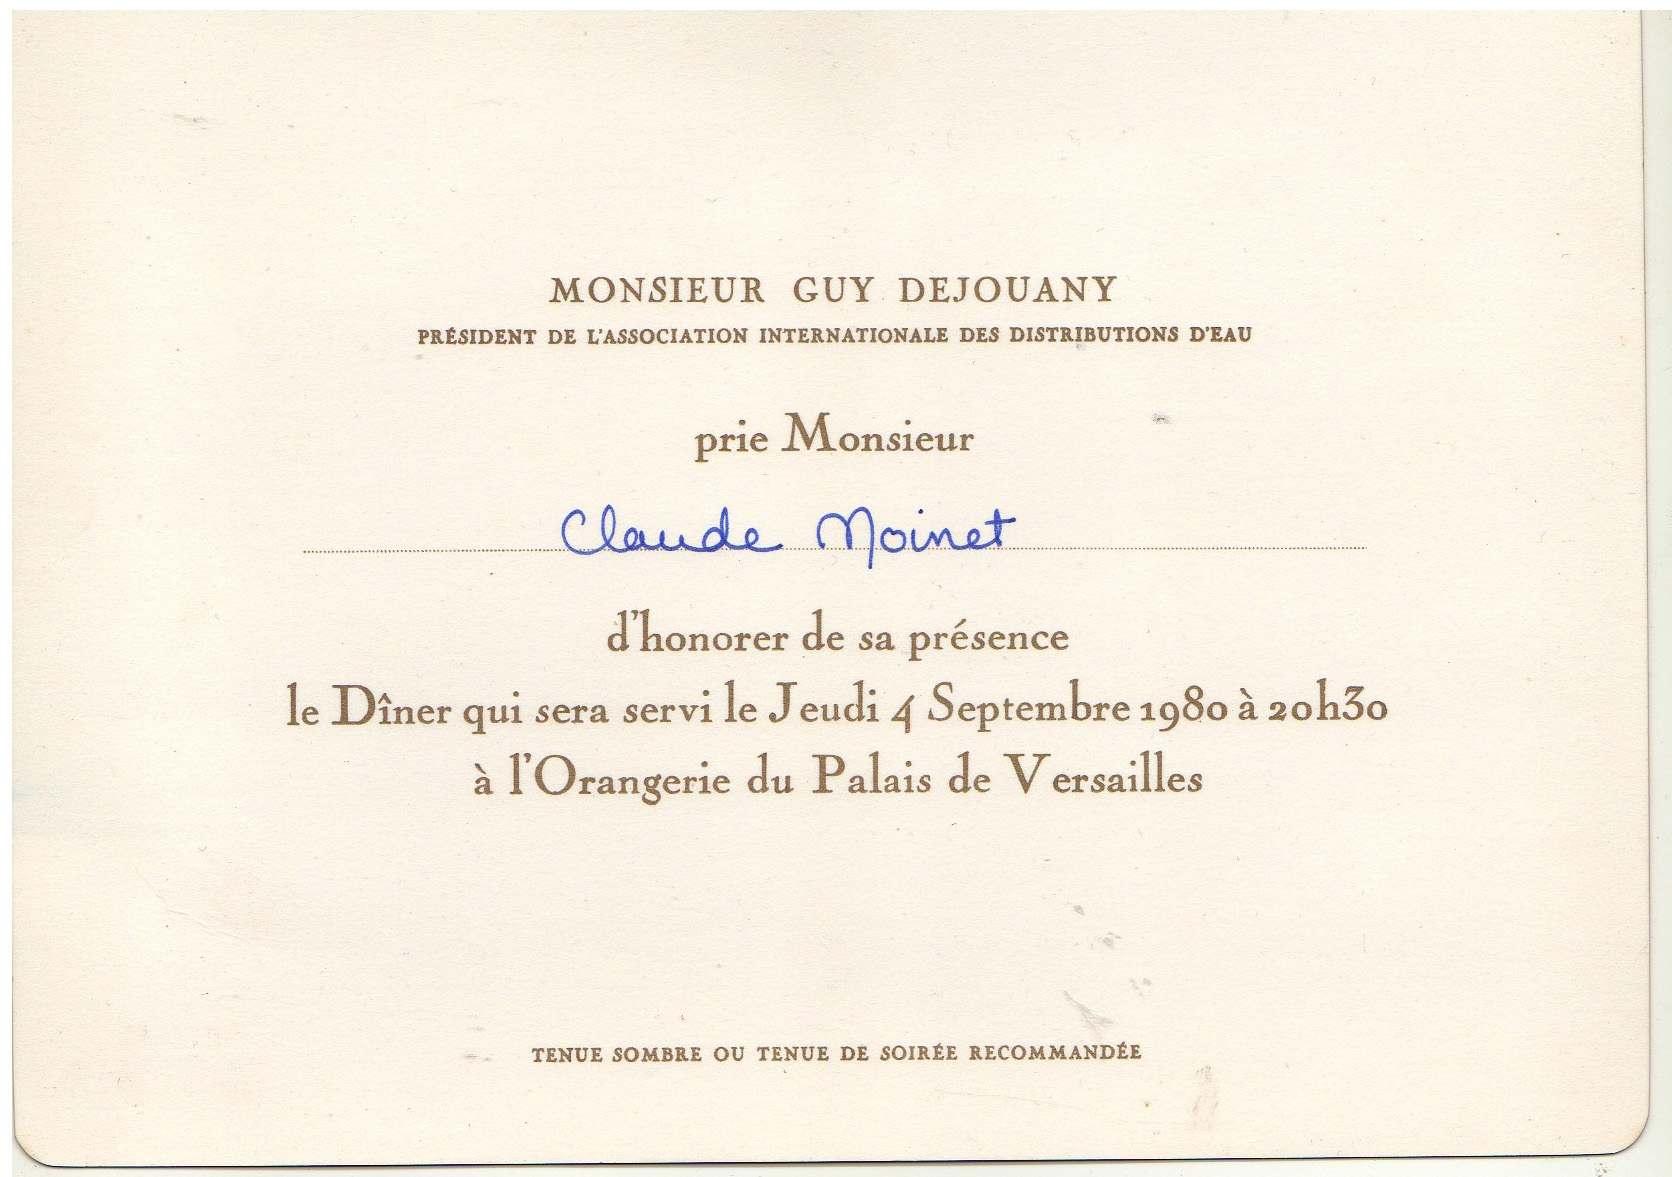 1980 invitation dejouany paris